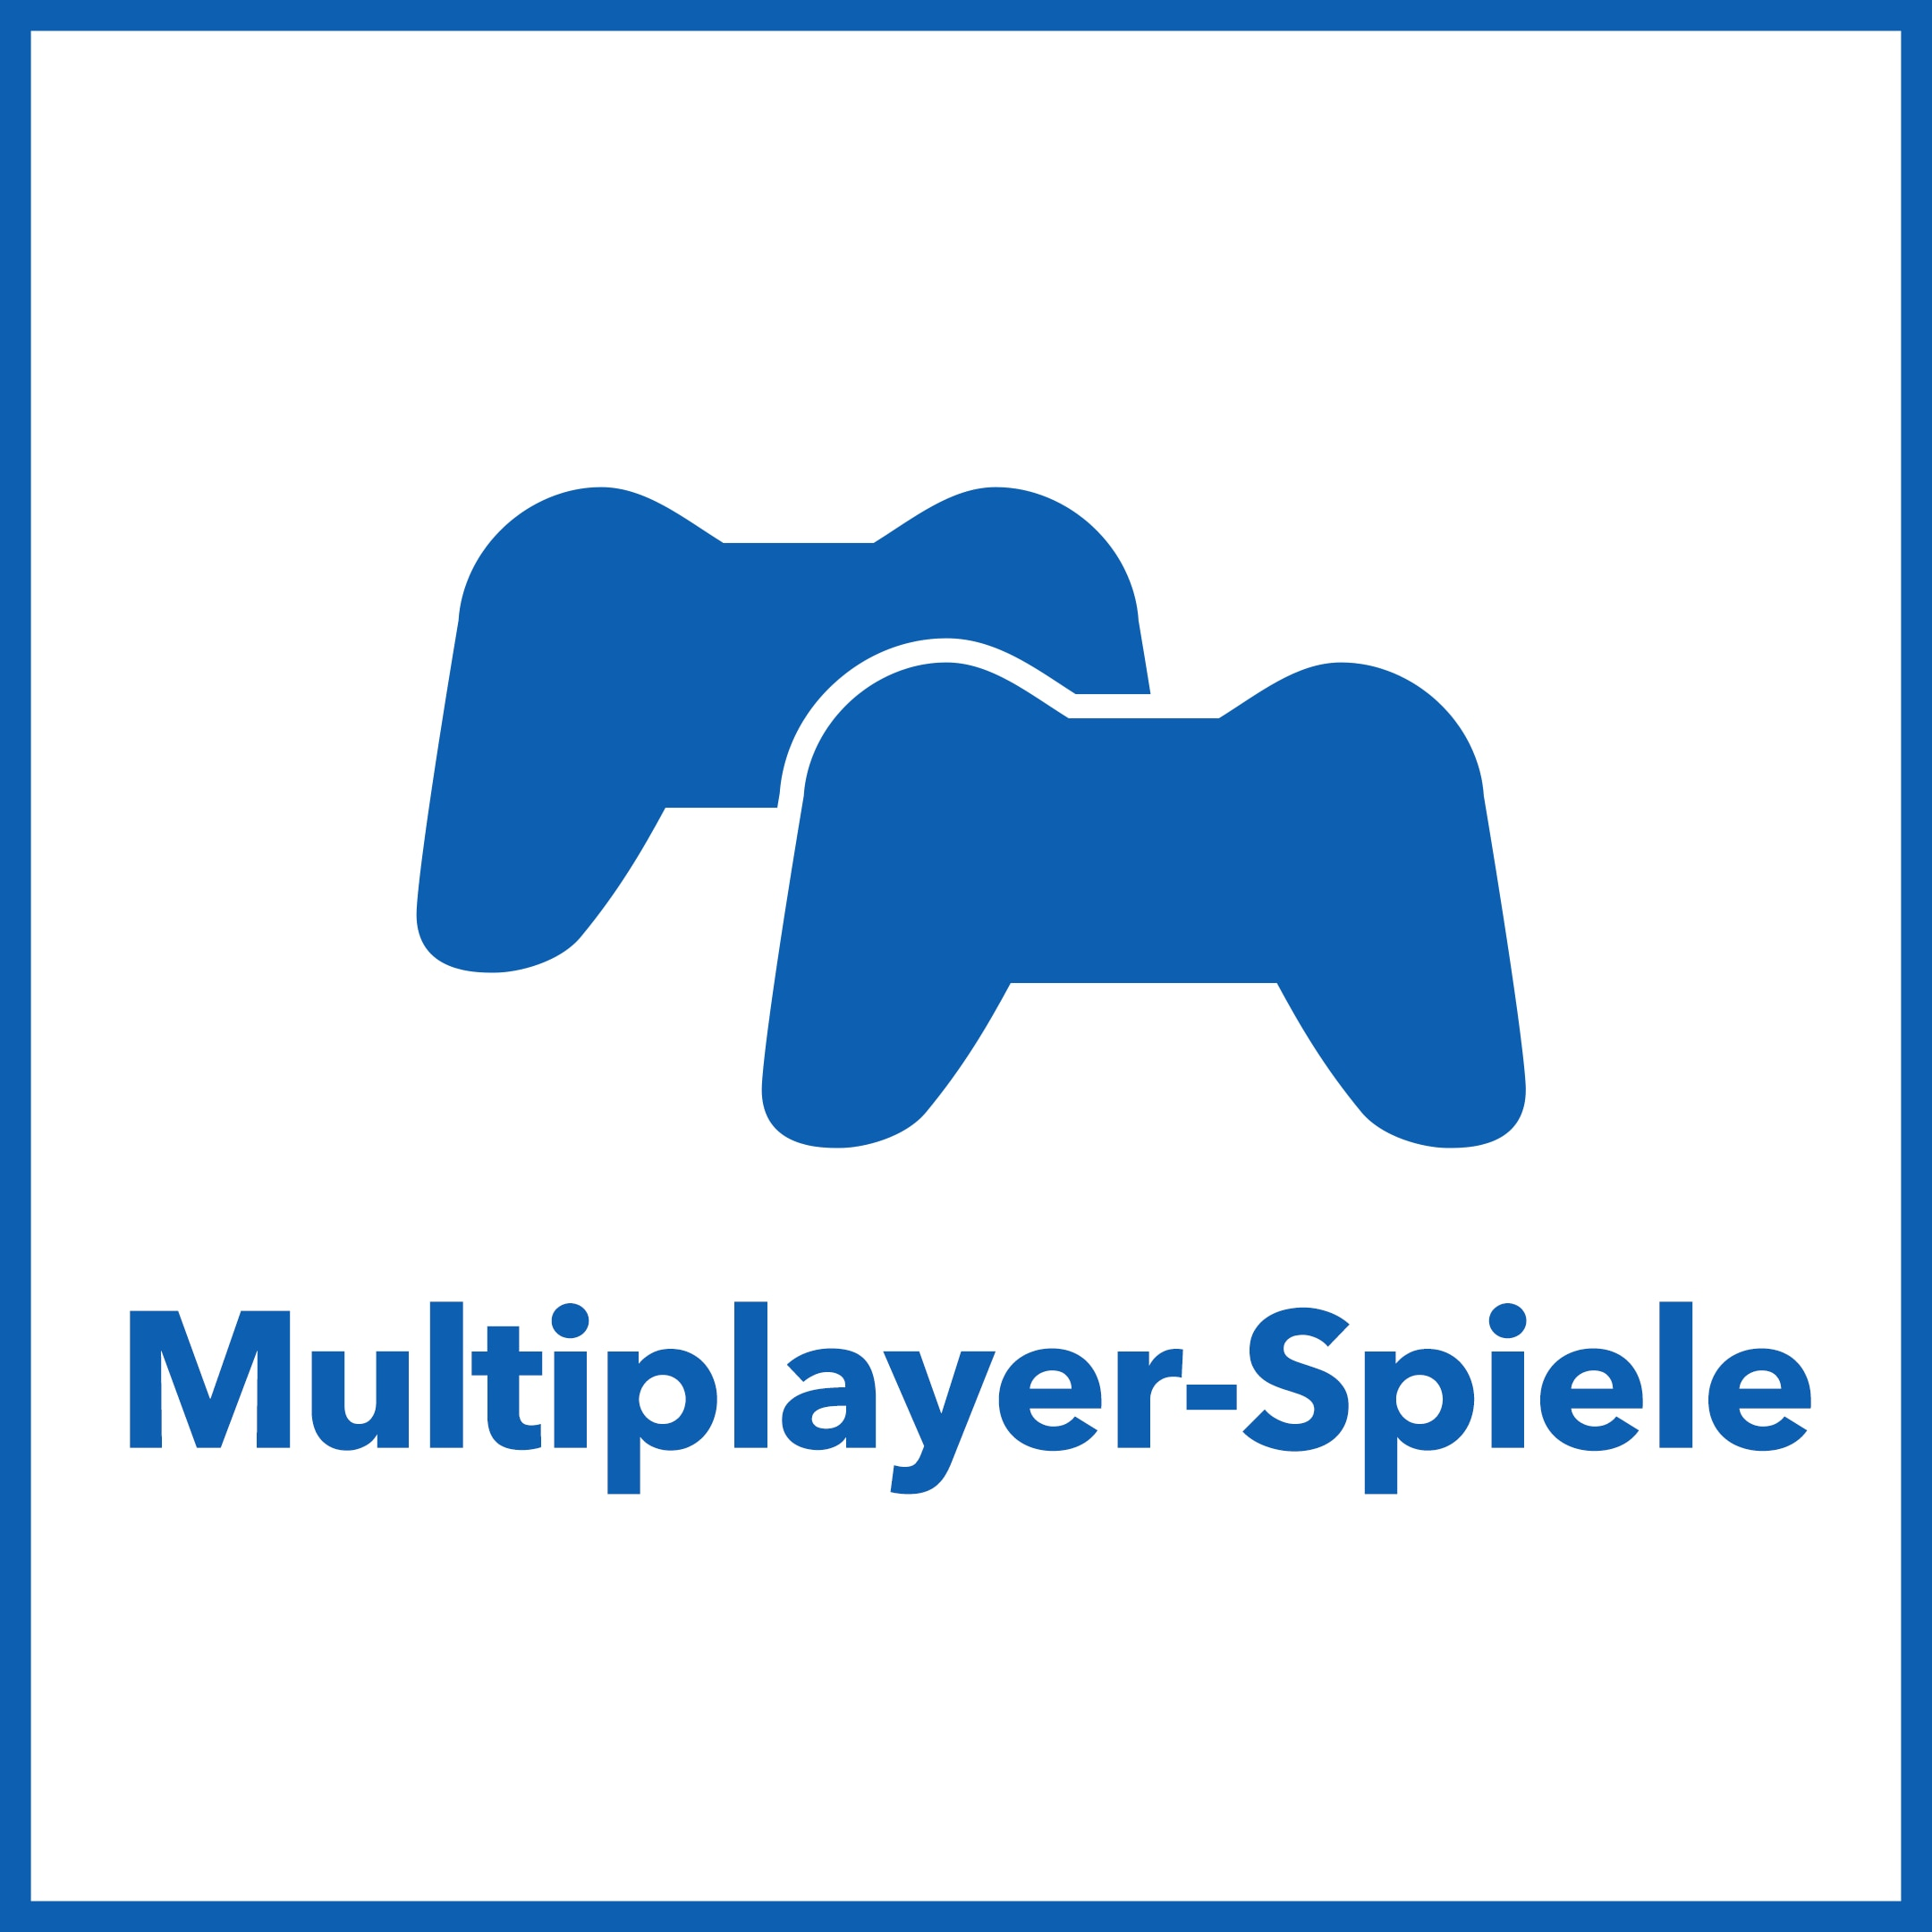 [PROMO] Spring Sale 21 - Multiplayer